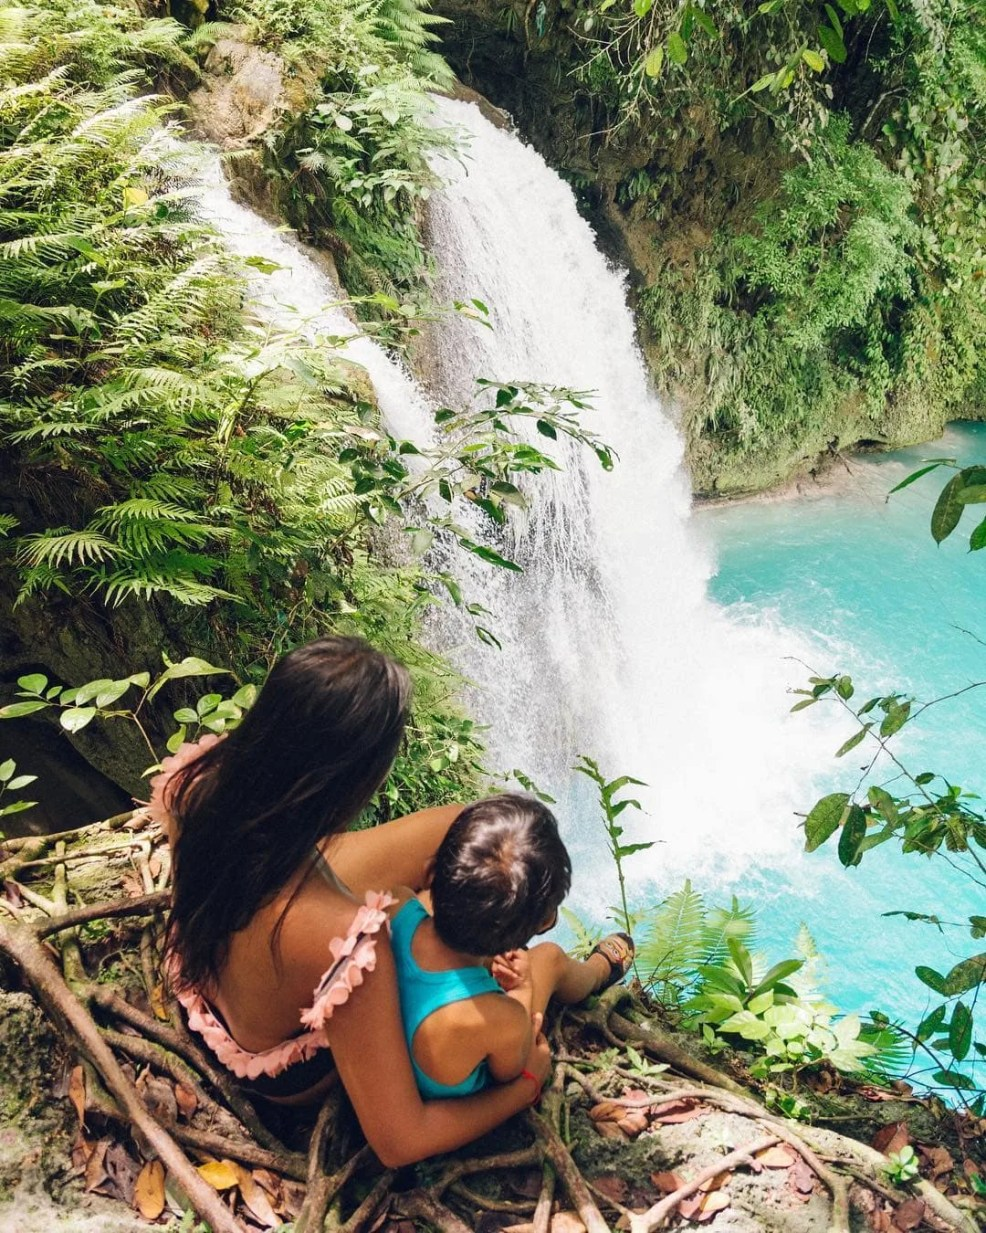 How to get to Kawasan Falls, Cebu, things to do in Cebu, Kawasan Falls Canyoneering, Moalboal to Kawasan Falls, Kawasan Falls to Oslob, where to sleep in Kawasan Falls, Kawasan Falls room rates